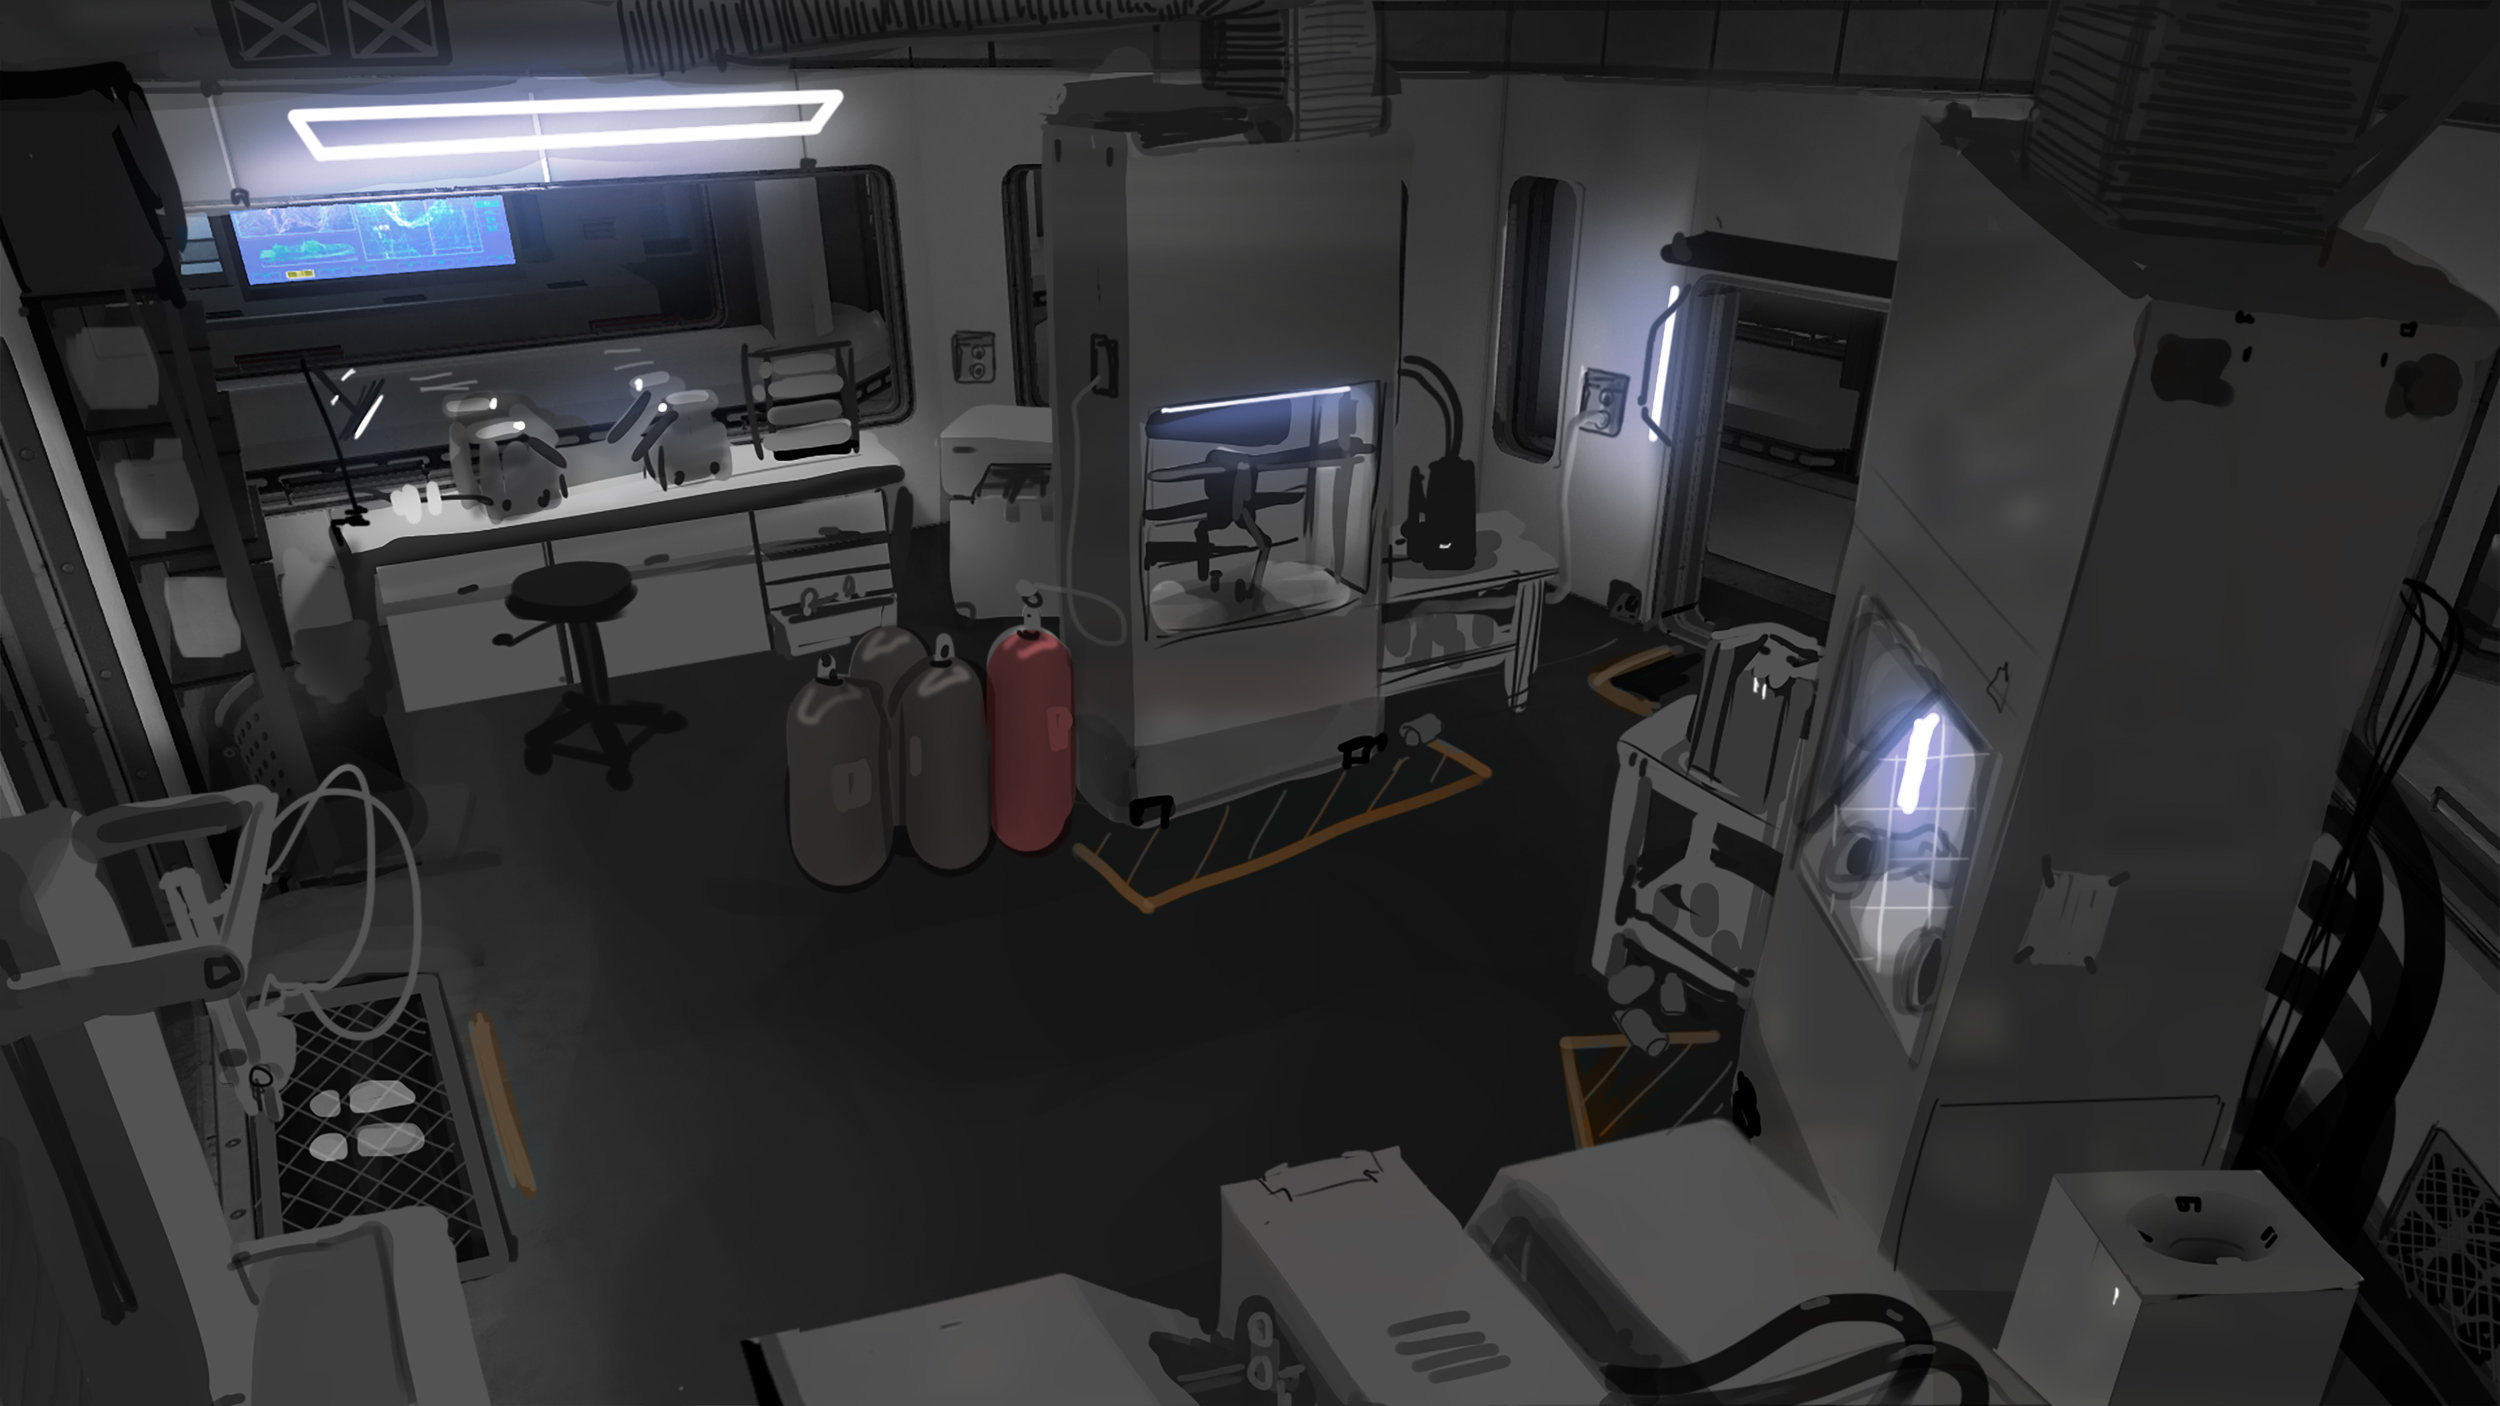 SDF_ResearchLab_small_room.jpg